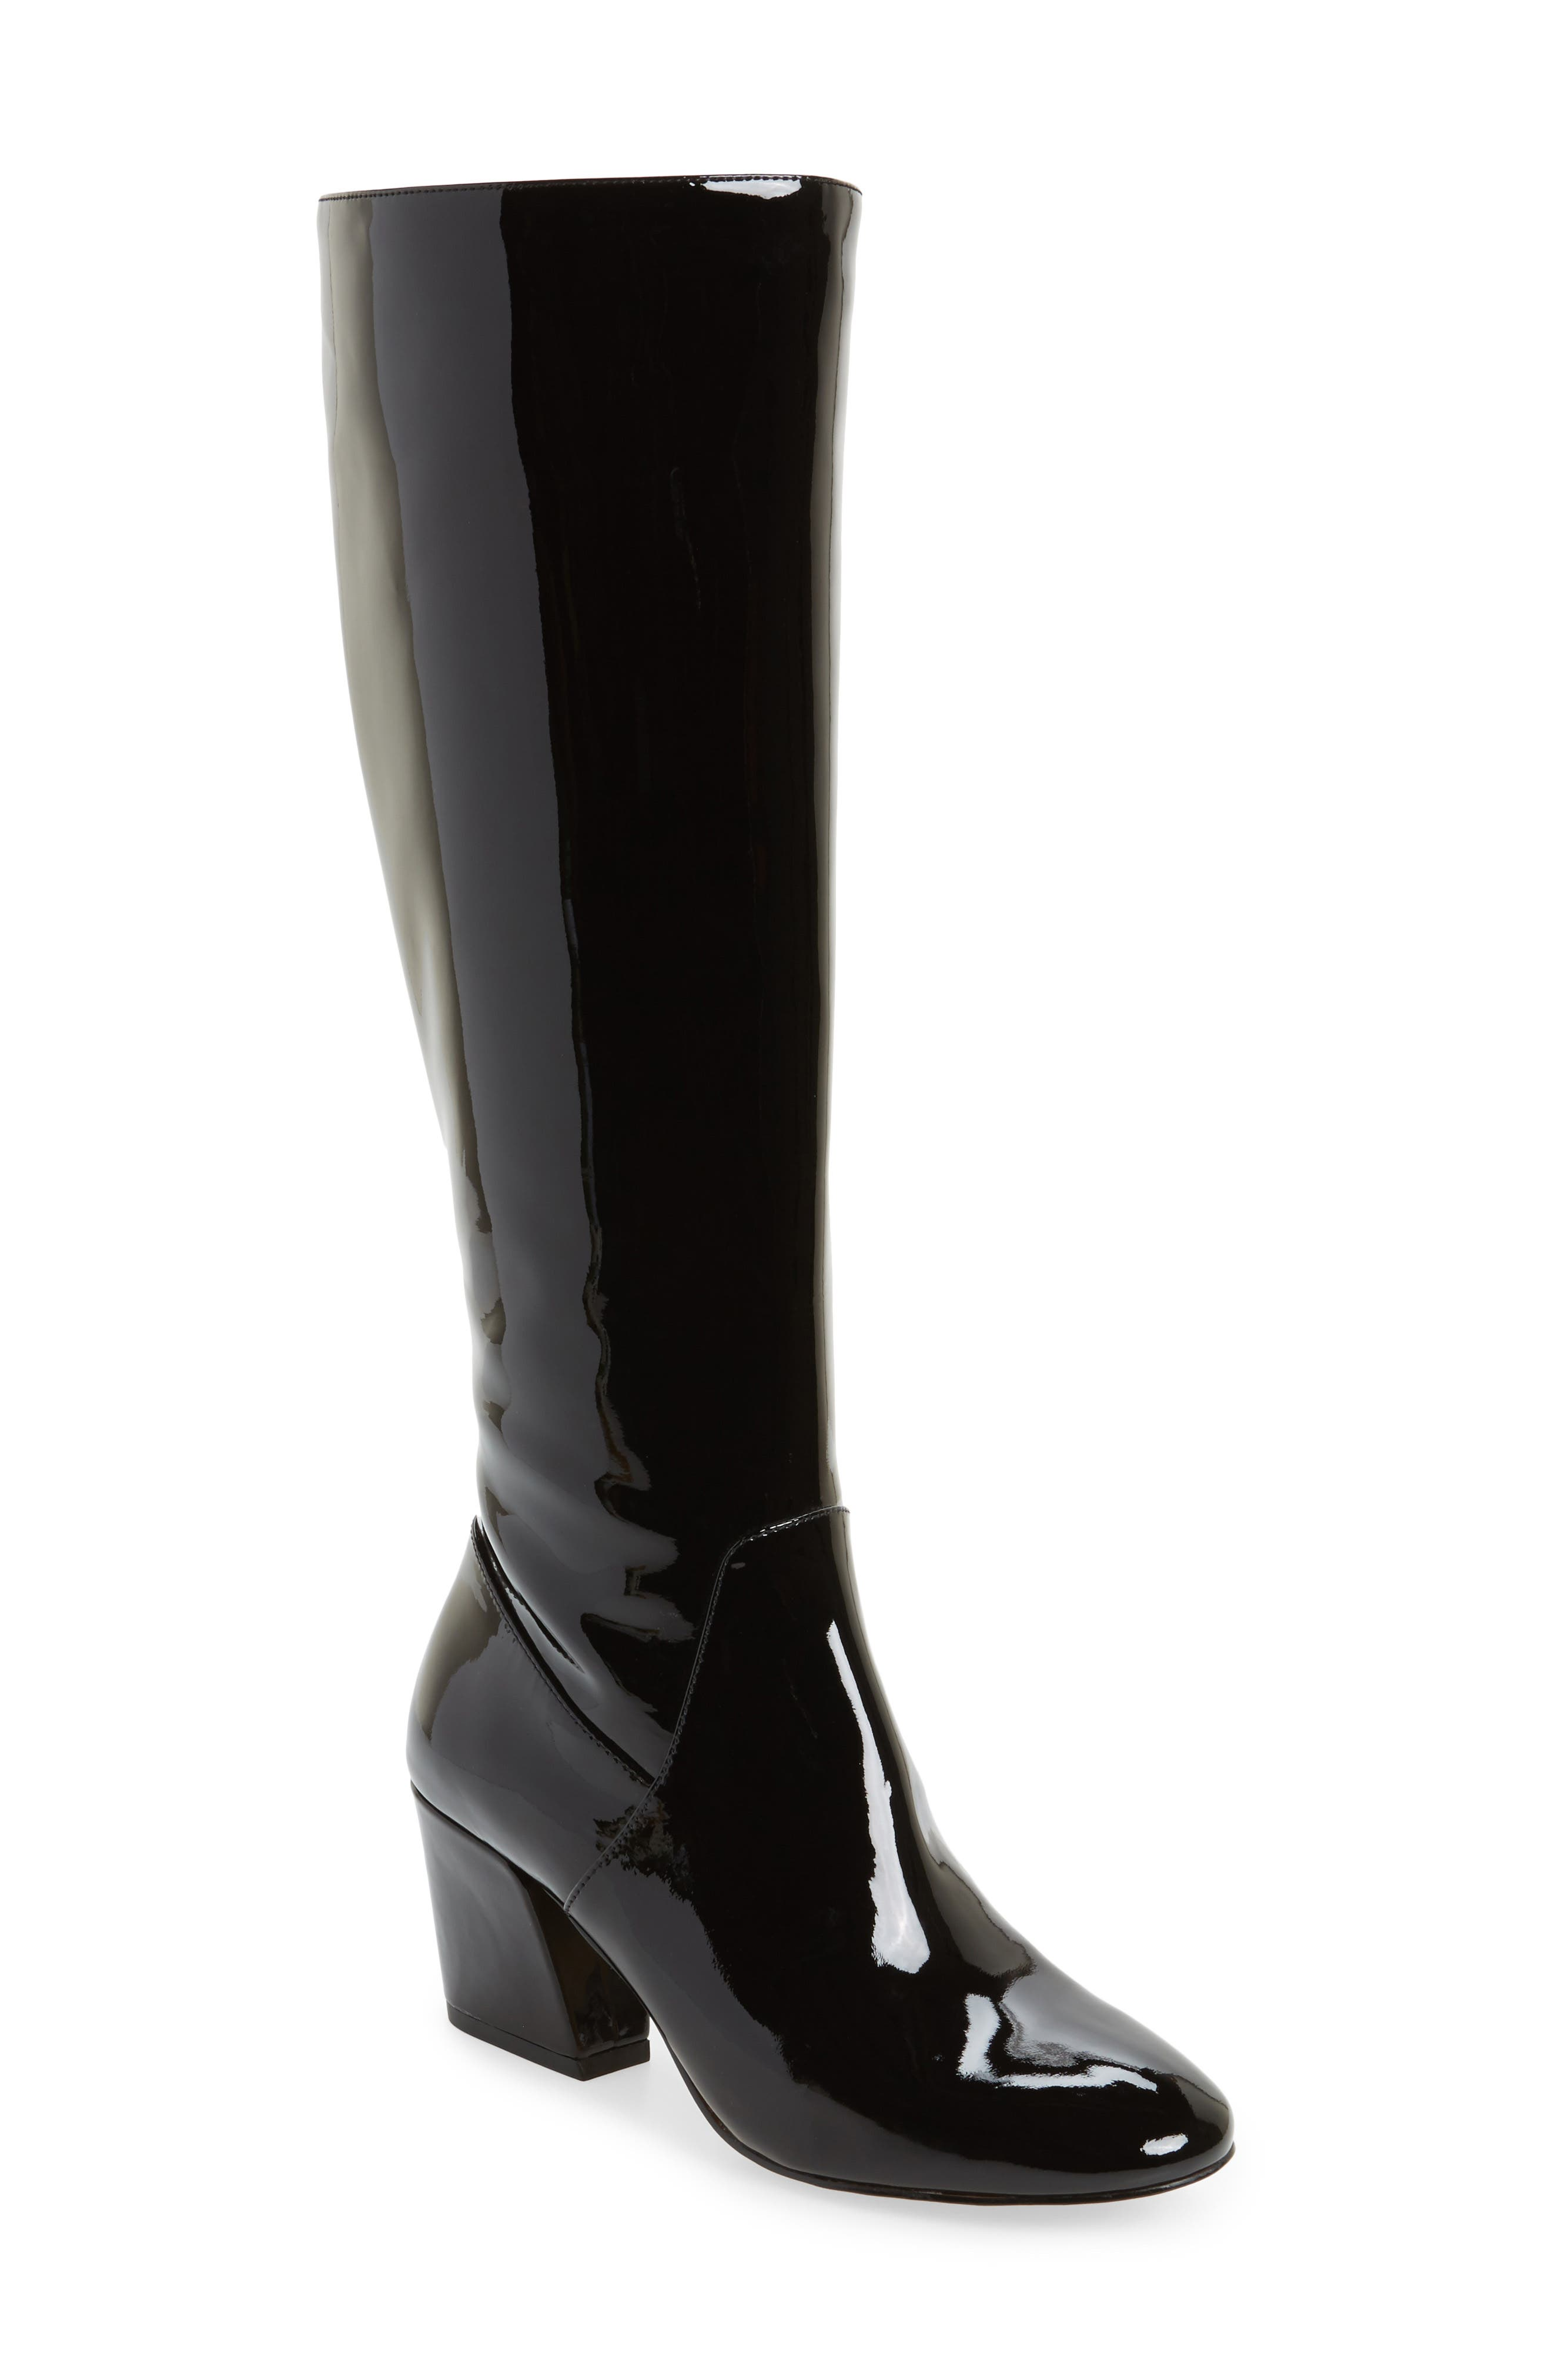 Adelle Knee High Boot,                         Main,                         color, Black Patent Leather